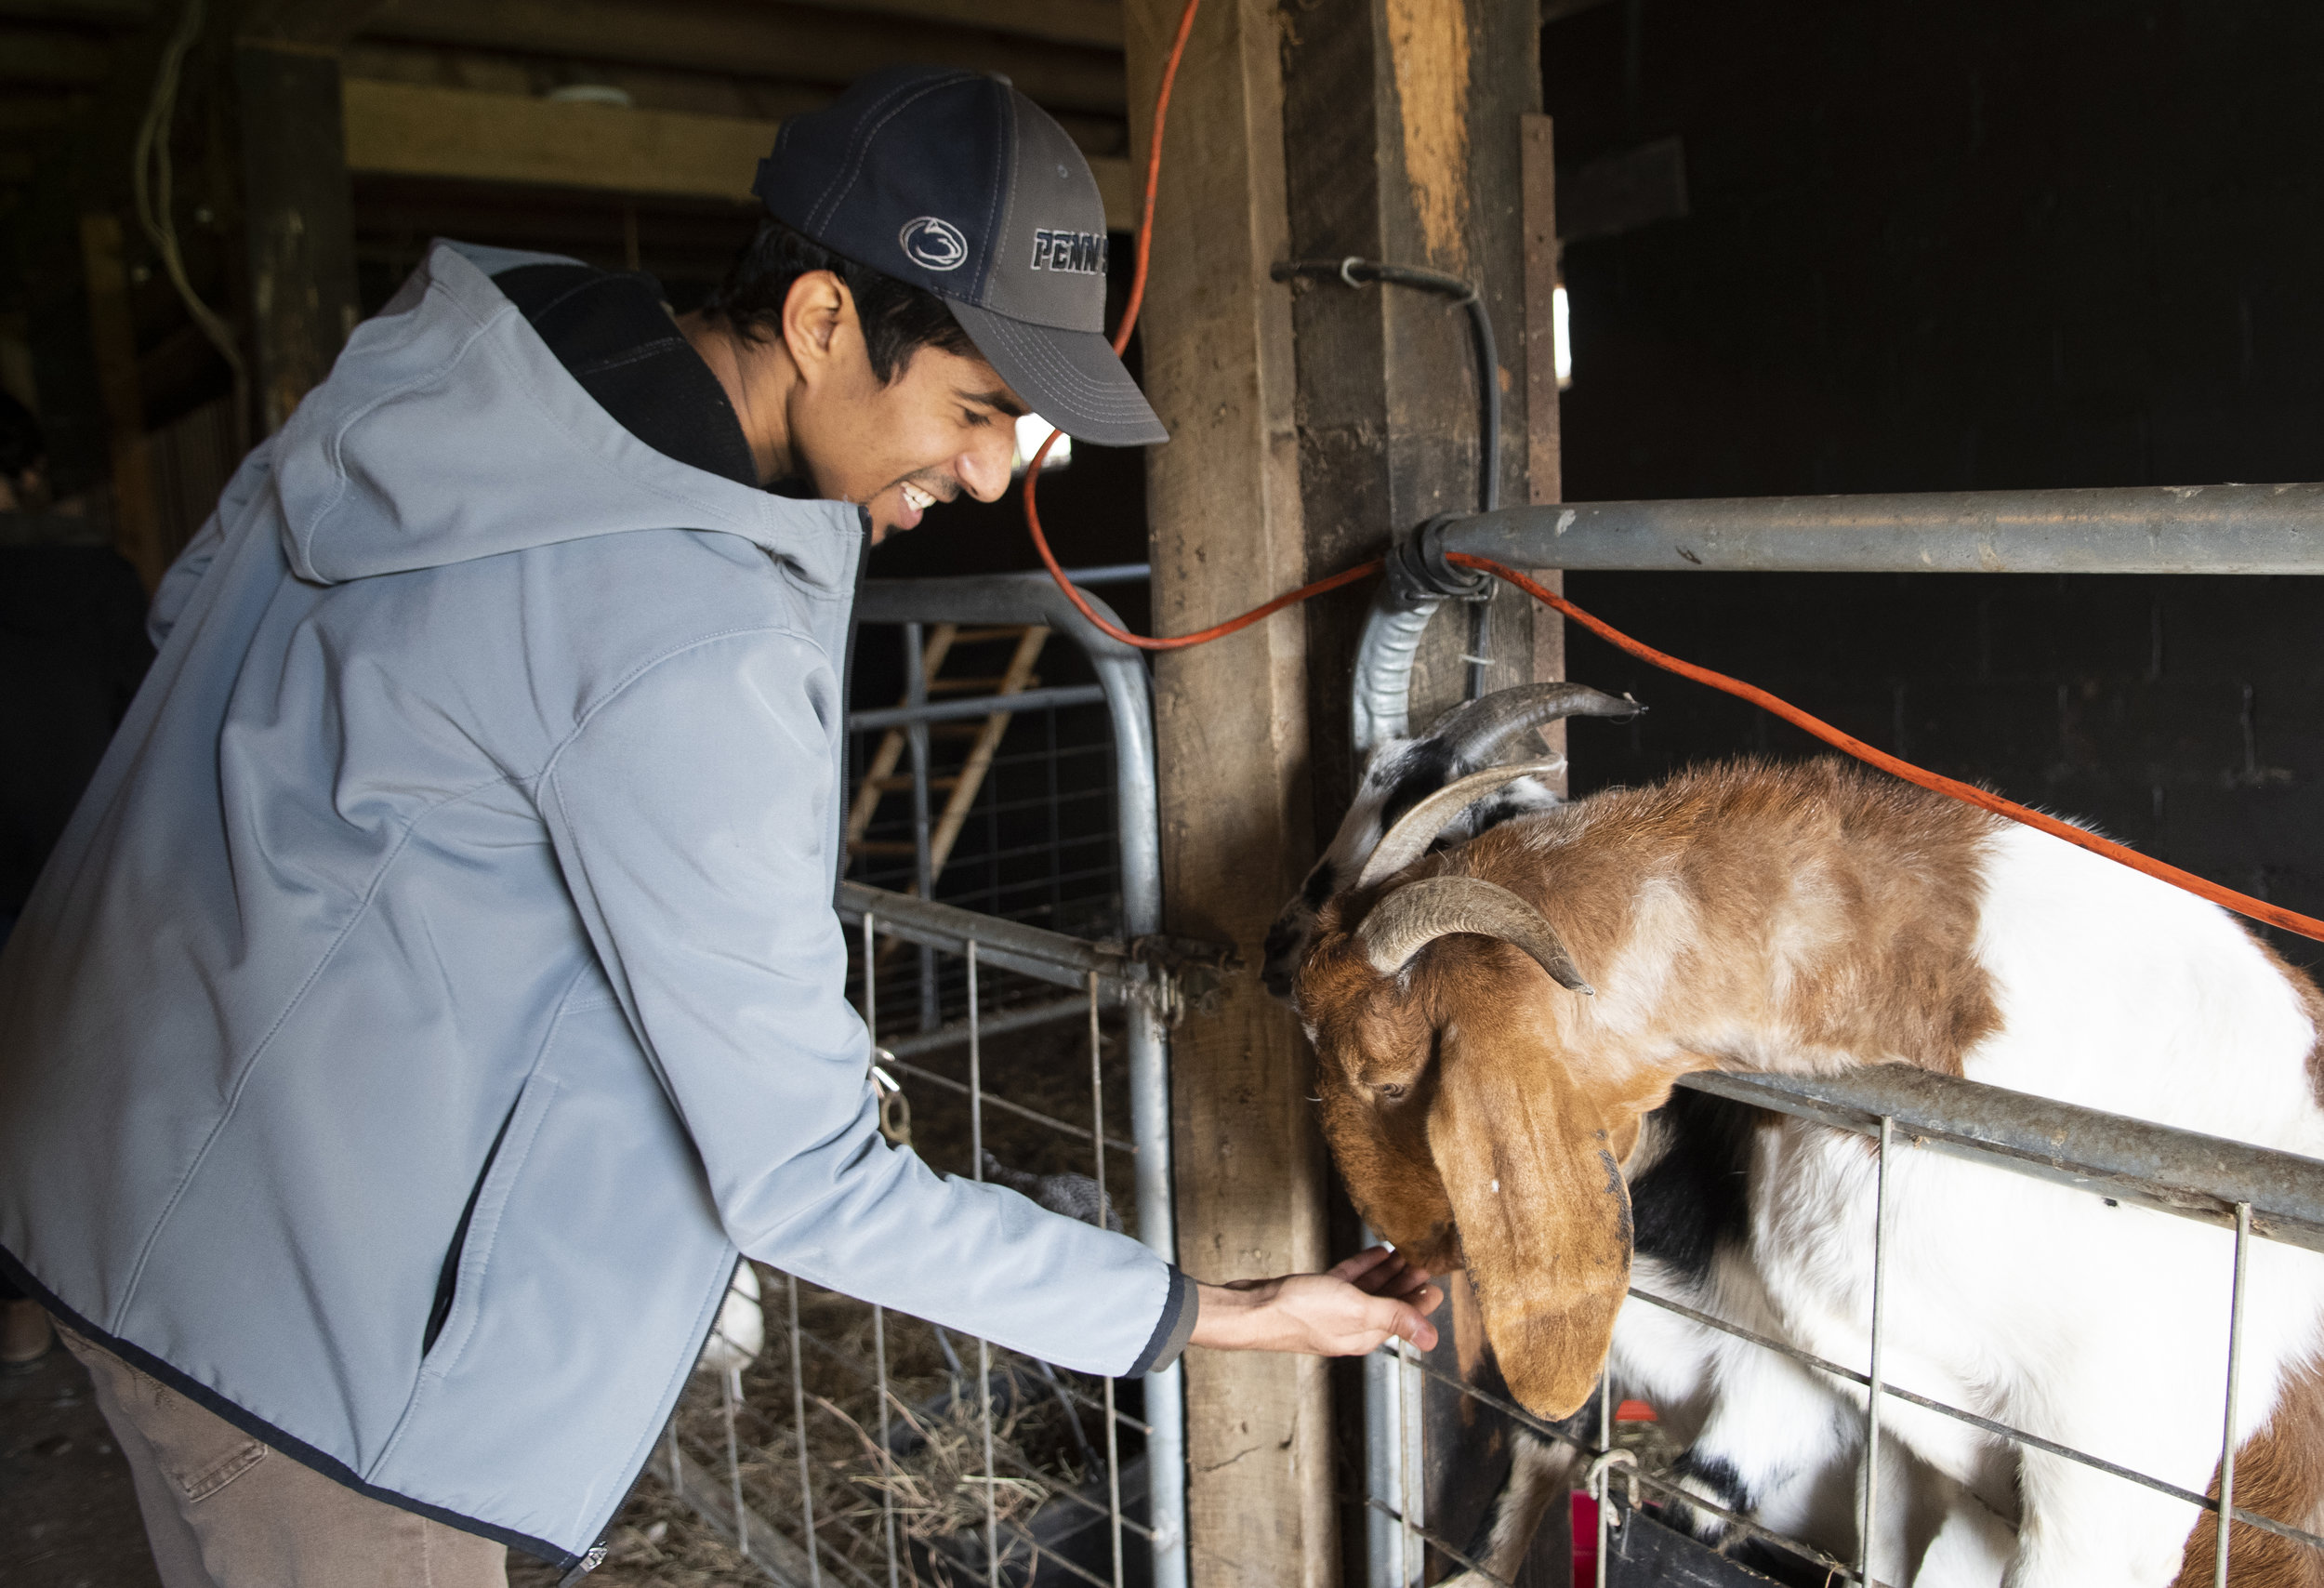 Sulaiman AlAghbari (junior-communication arts and science) feeds a goat during the Crop Mob event at The Barn on Valley View Road in Bellefonte on Nov. 3, 2018. | Photo by: Noah Riffe